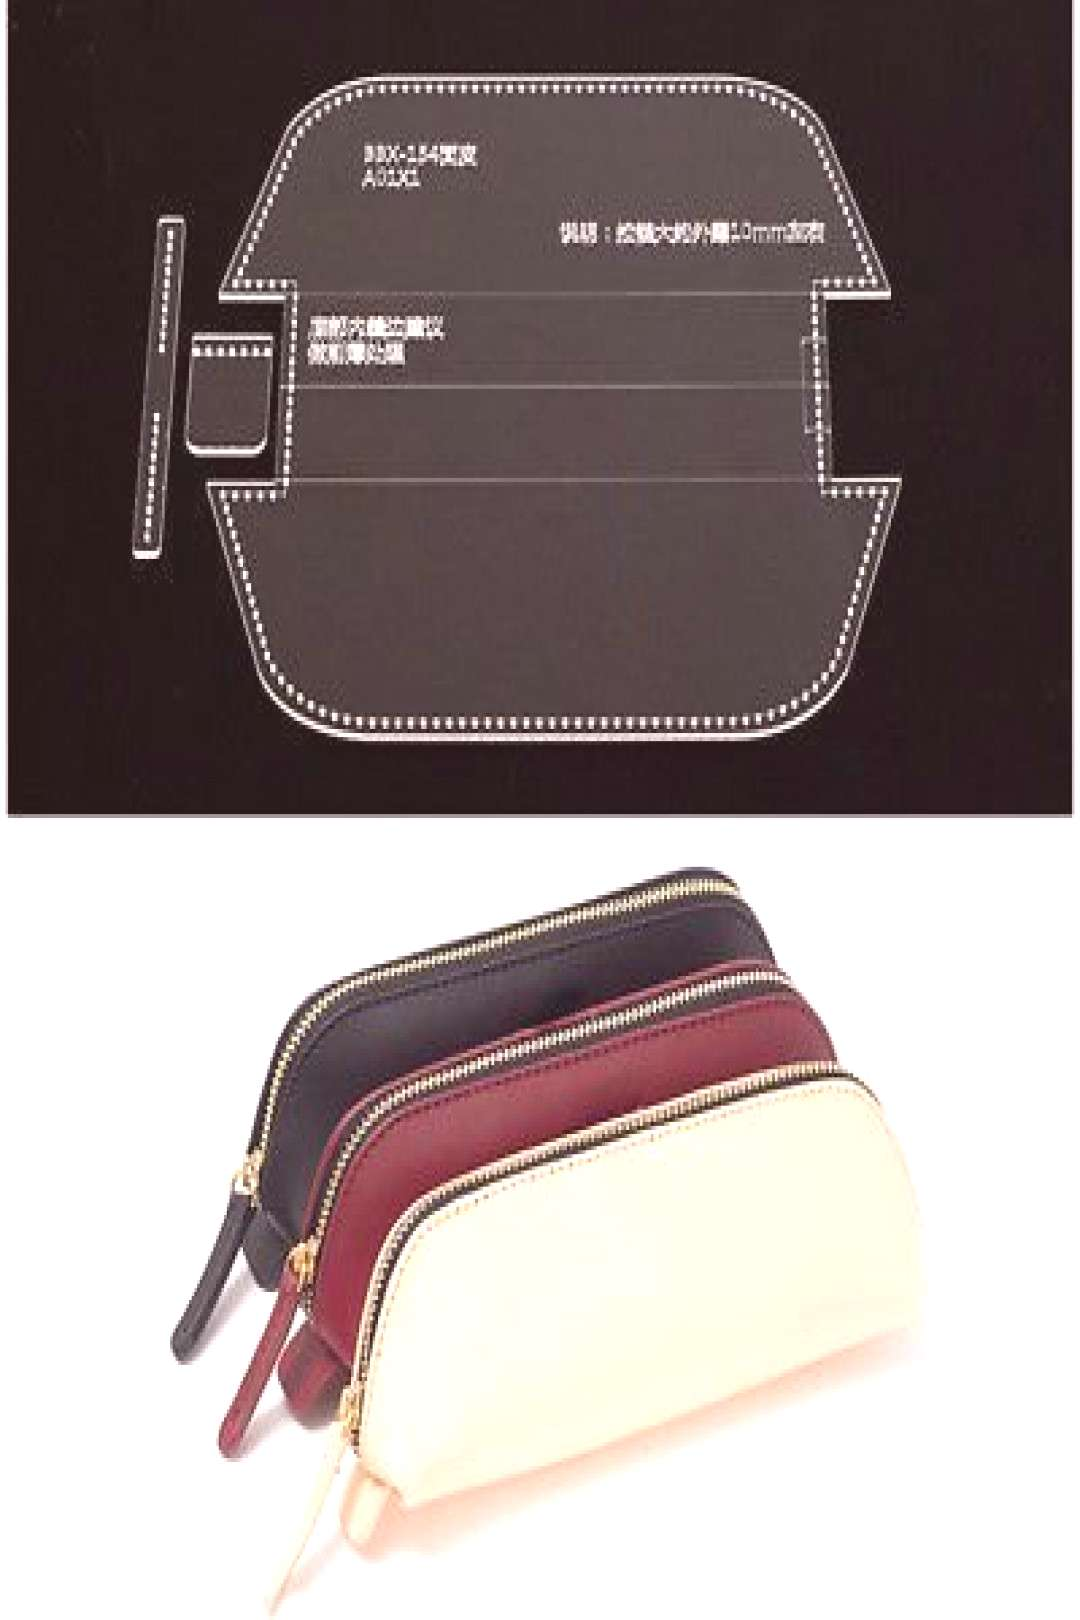 Details about Acrylic Pencil Case Pencil Bag Template Leather Craft Pattern ...- Details über Acry